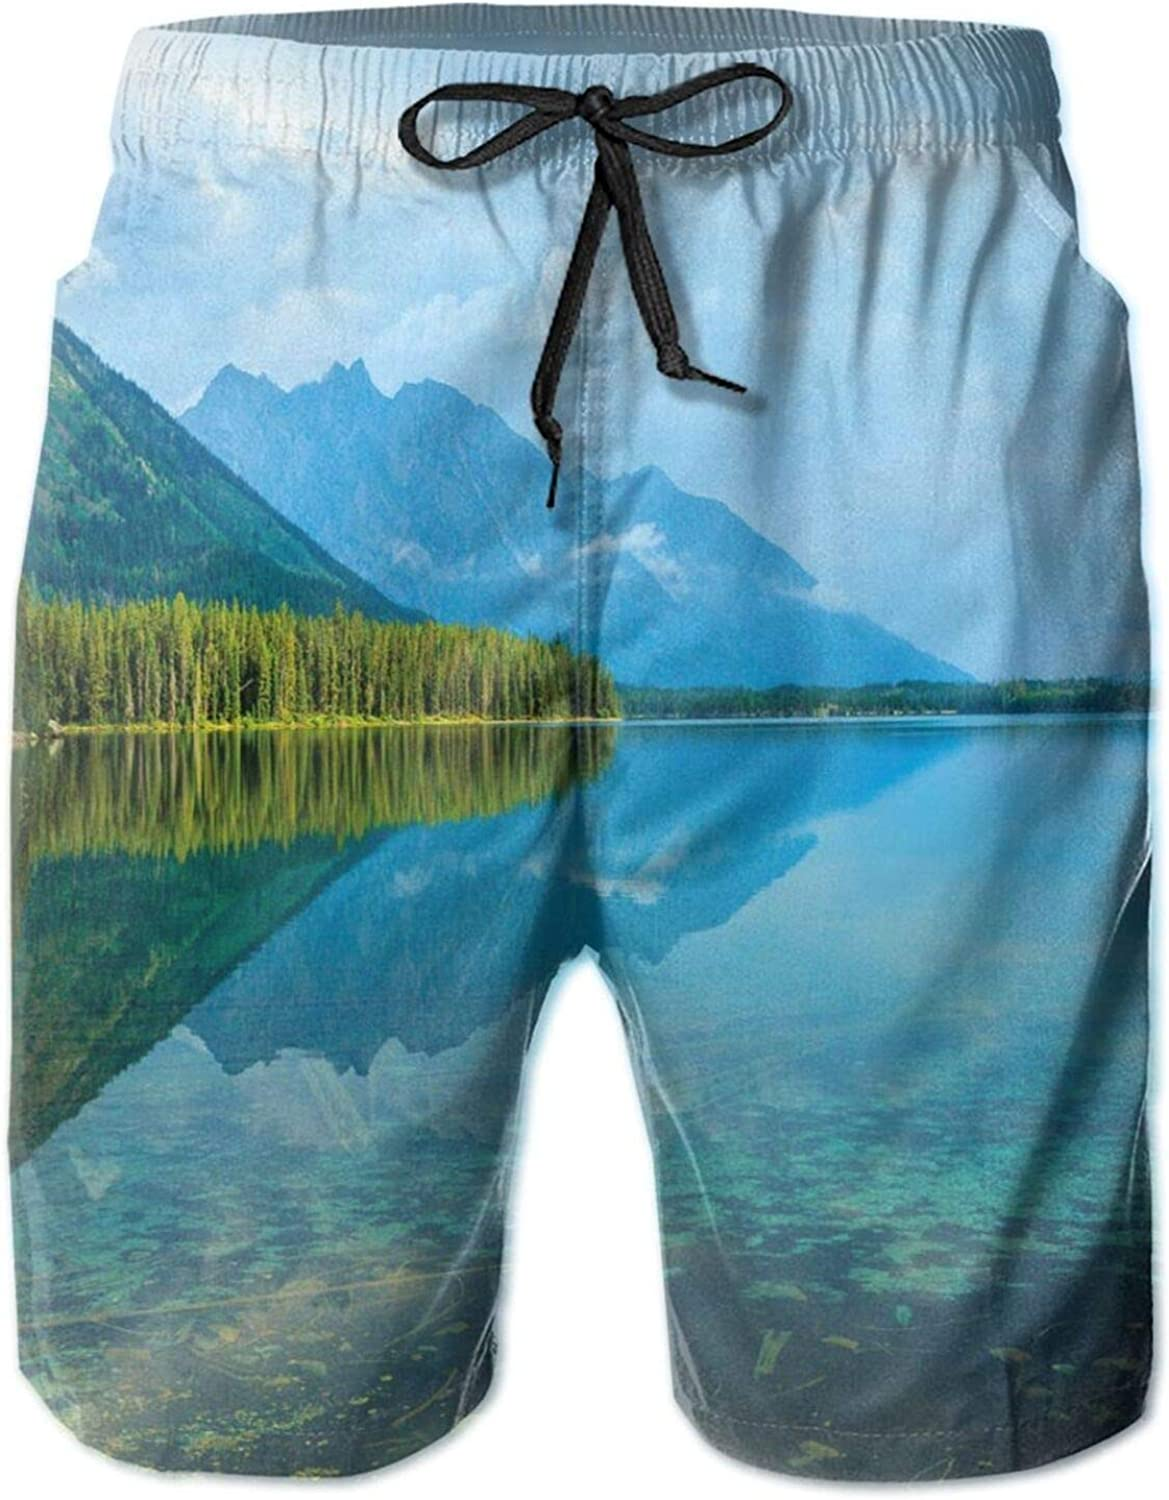 Leigh Lake Landscape with Amazing Sky and Reflections On Calm Water Swimming Trunks for Men Beach Shorts Casual Style,XL